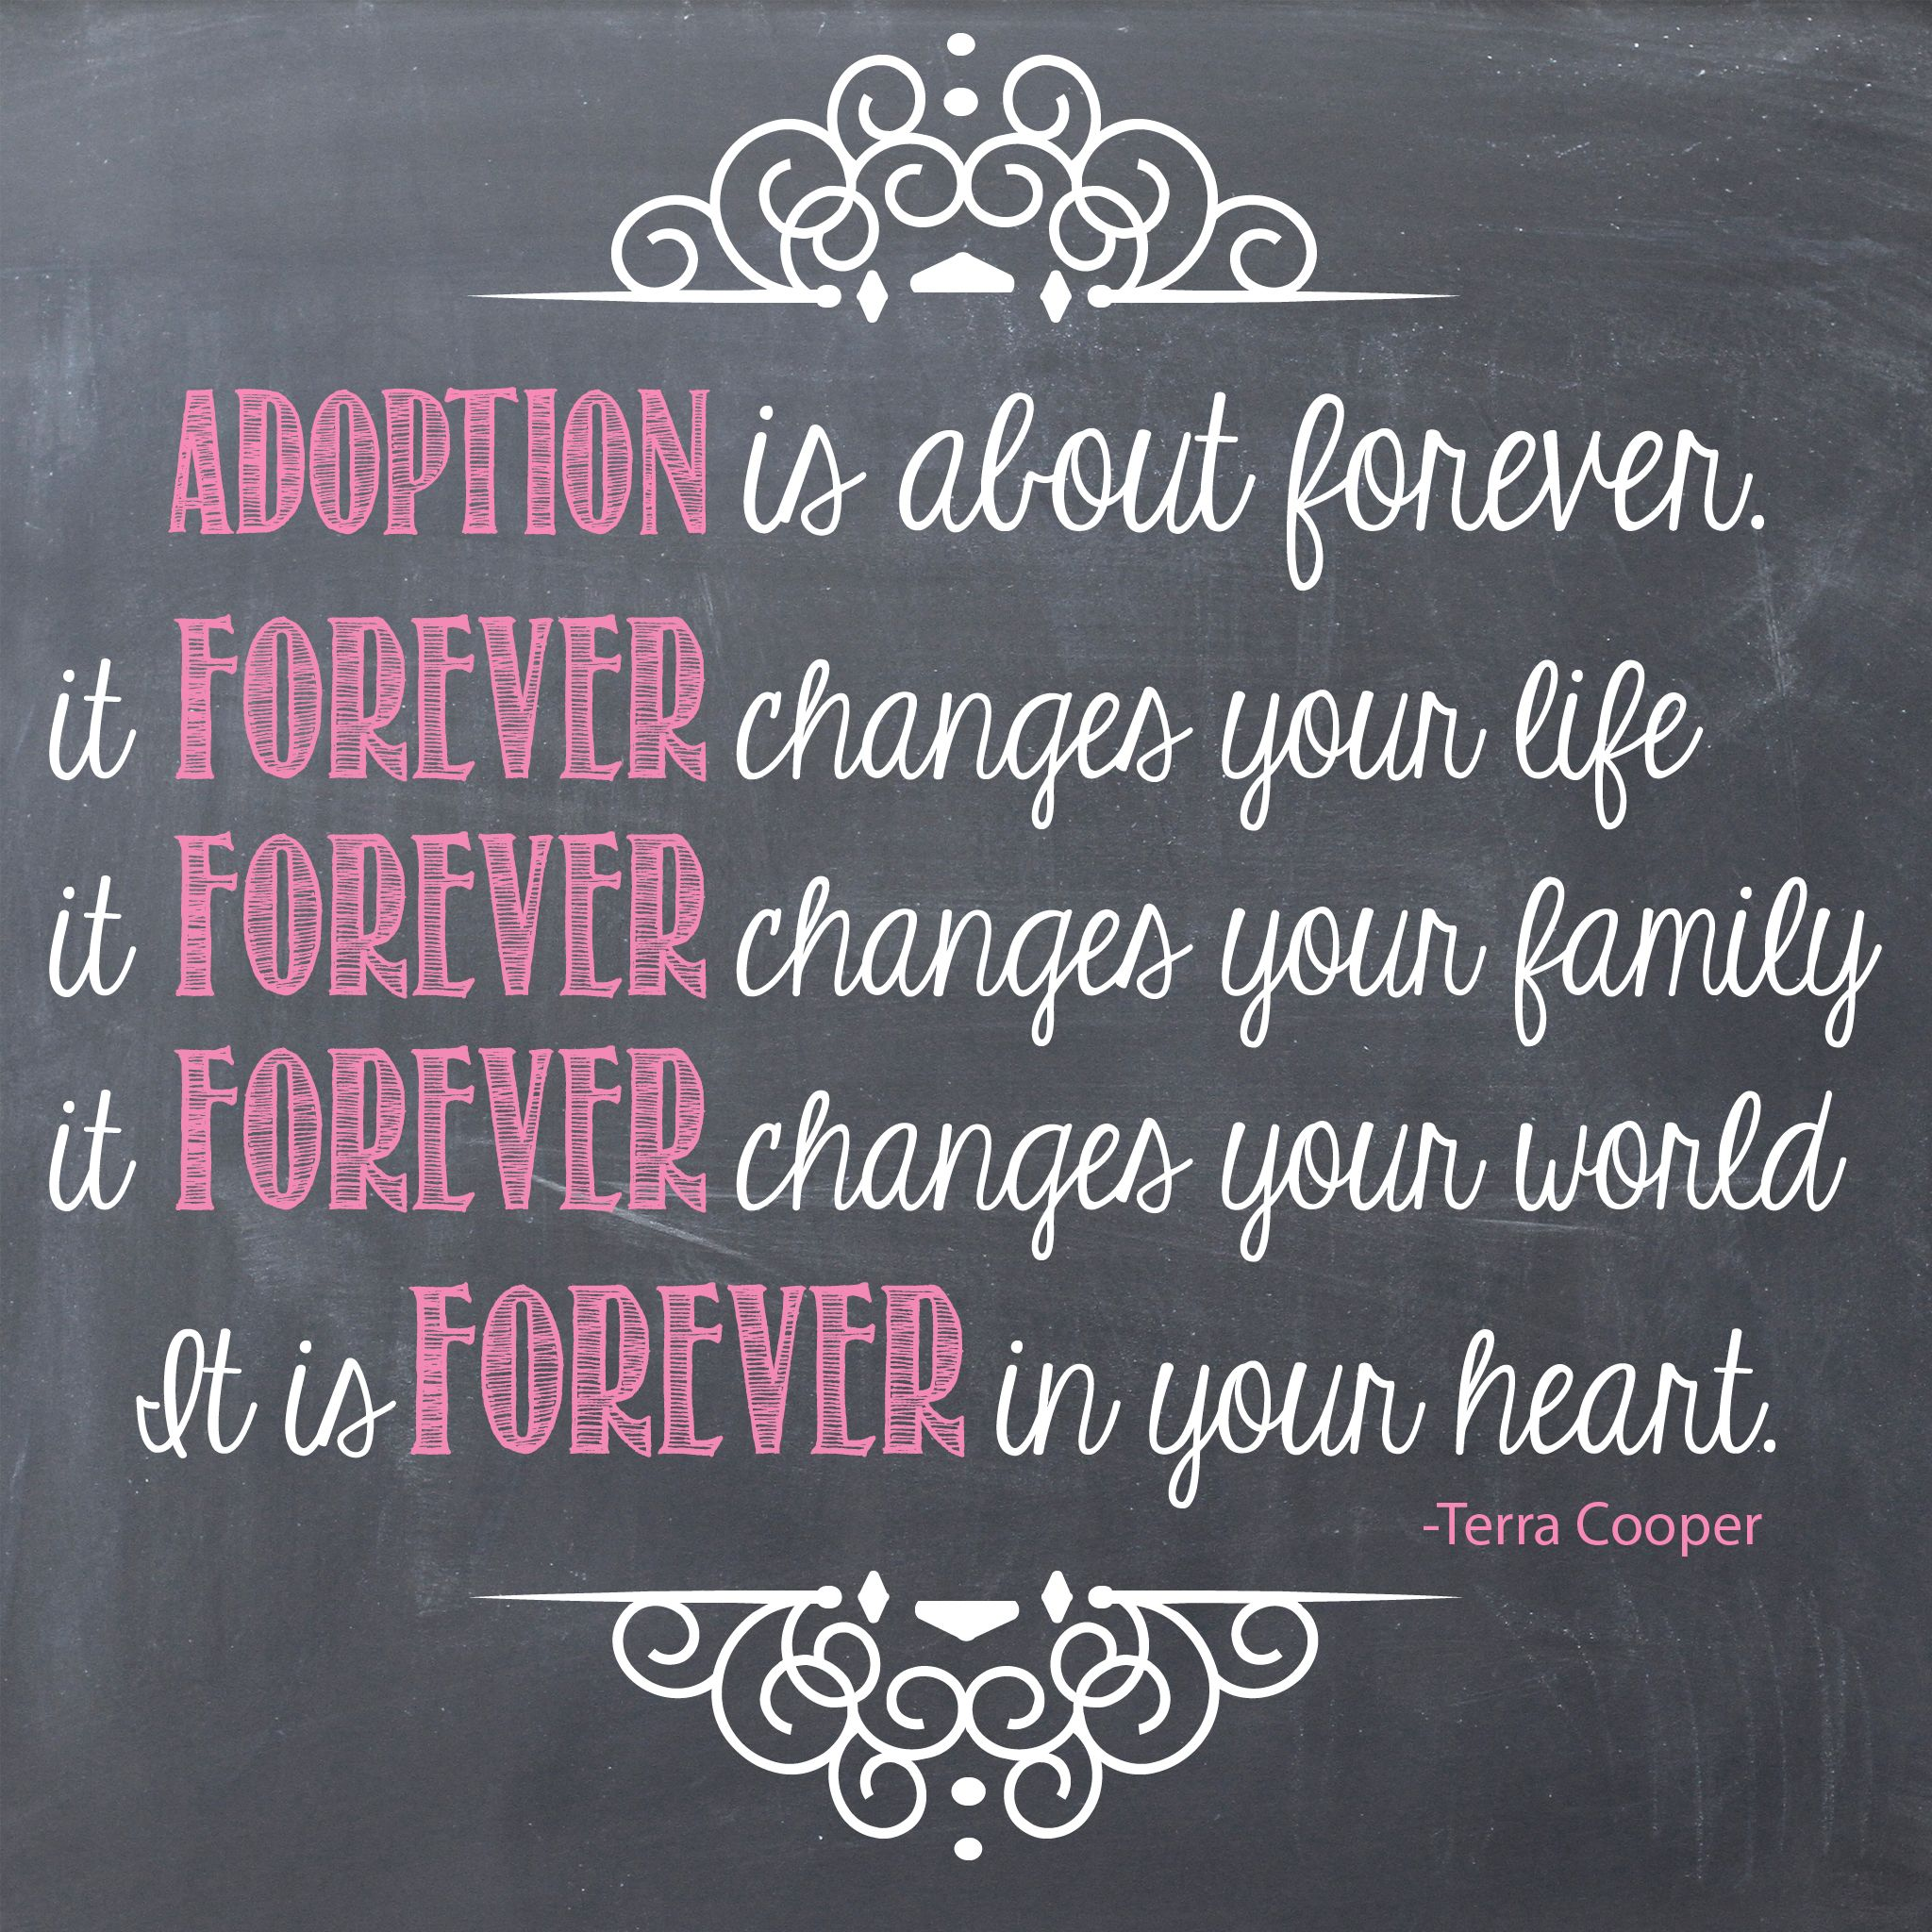 Adoption: Birth Mother Quote By Terra Cooper #openadoption